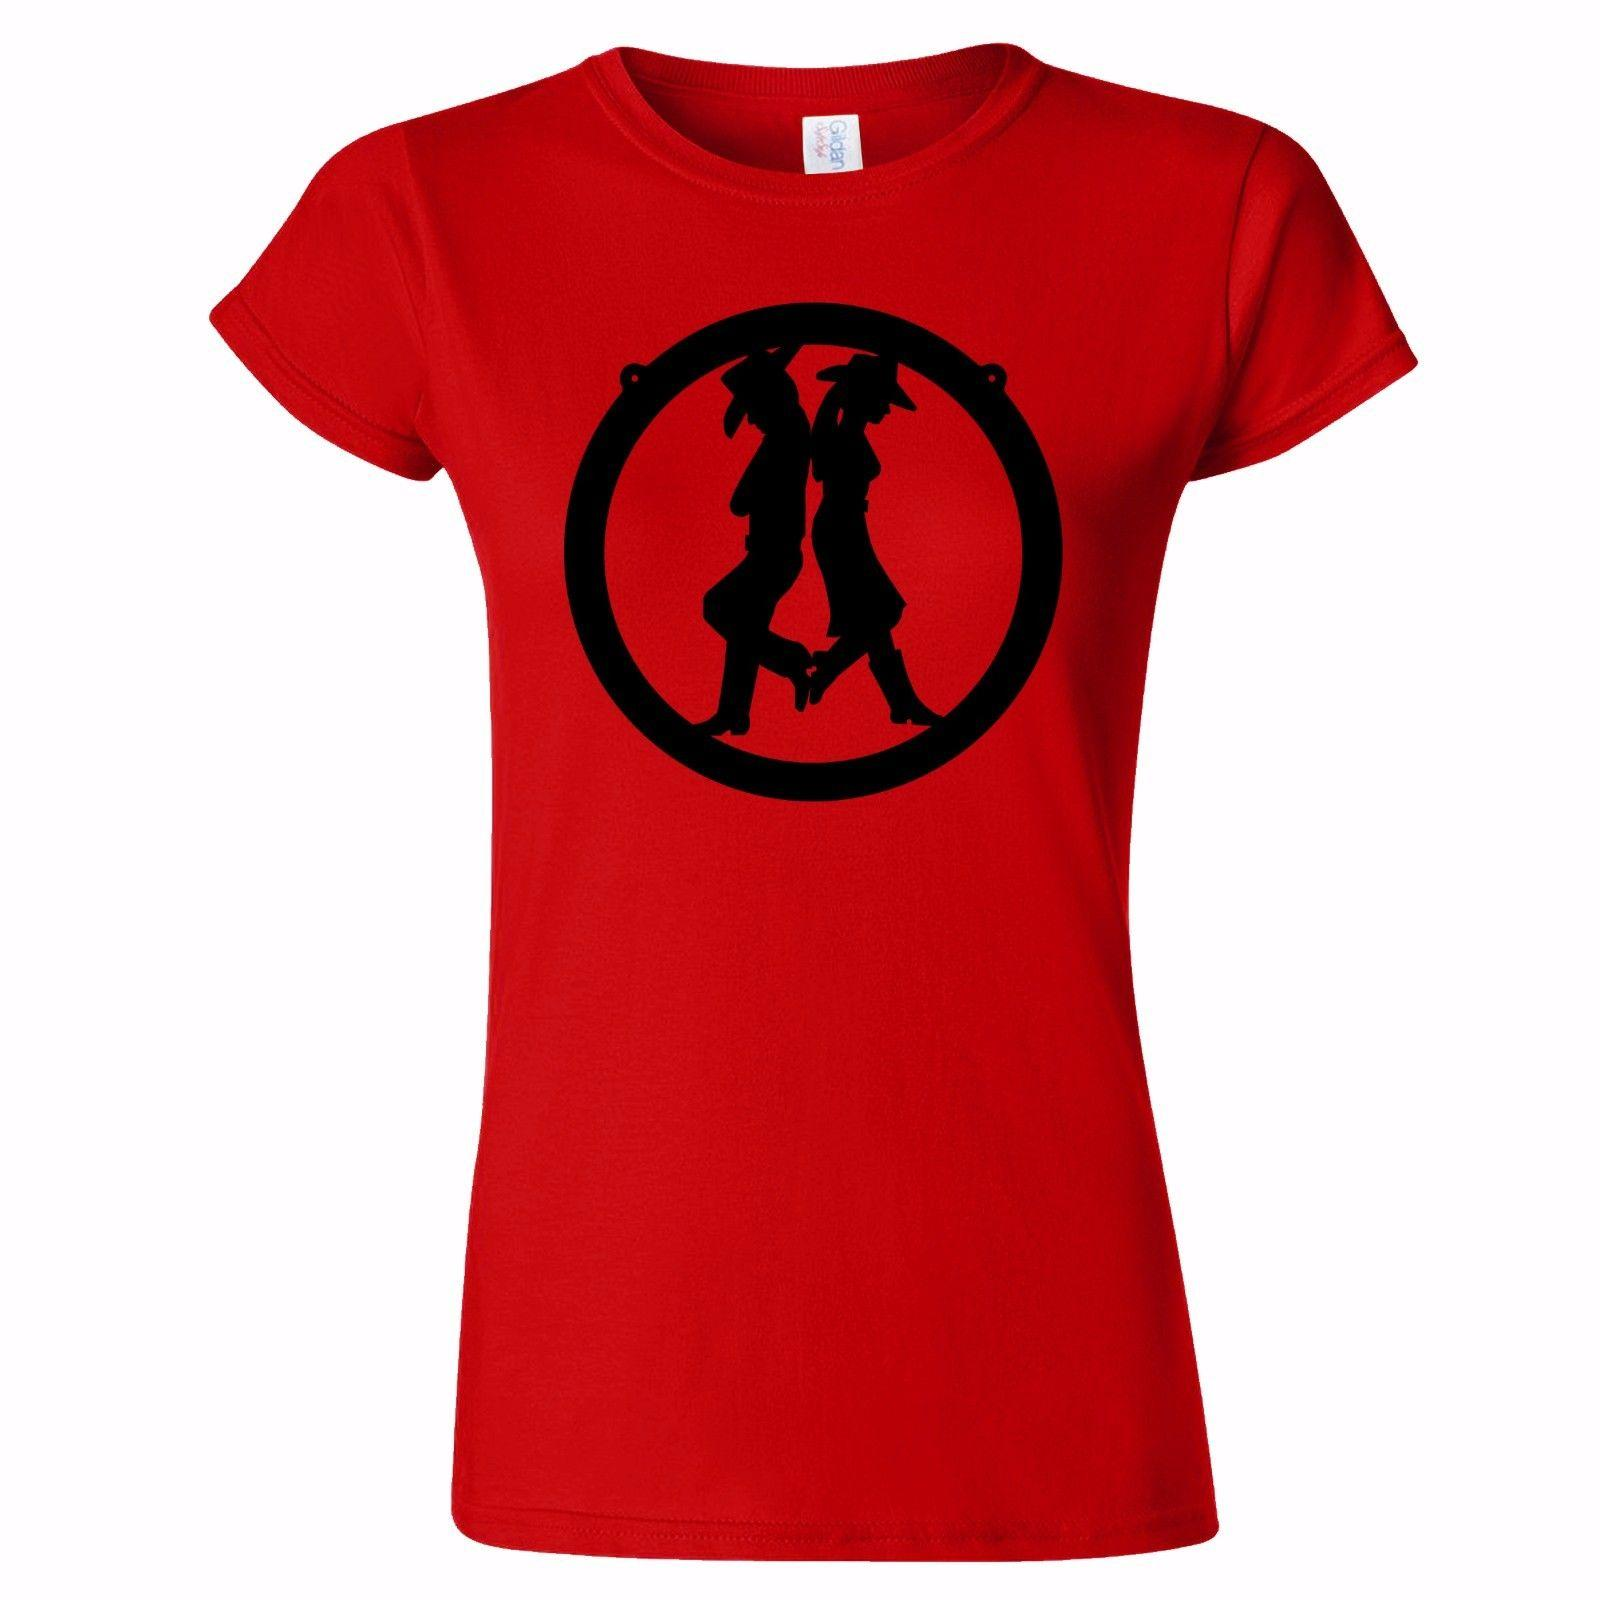 6a00ee83 COWBOY COWGIRL WOMENS T SHIRT COUNTRY WESTERN DANCE LINE AMERICA AMERICAN  MUSIC Cool Funny T Shirts On T Shirt From Bangtidyclothing, $10.9|  DHgate.Com